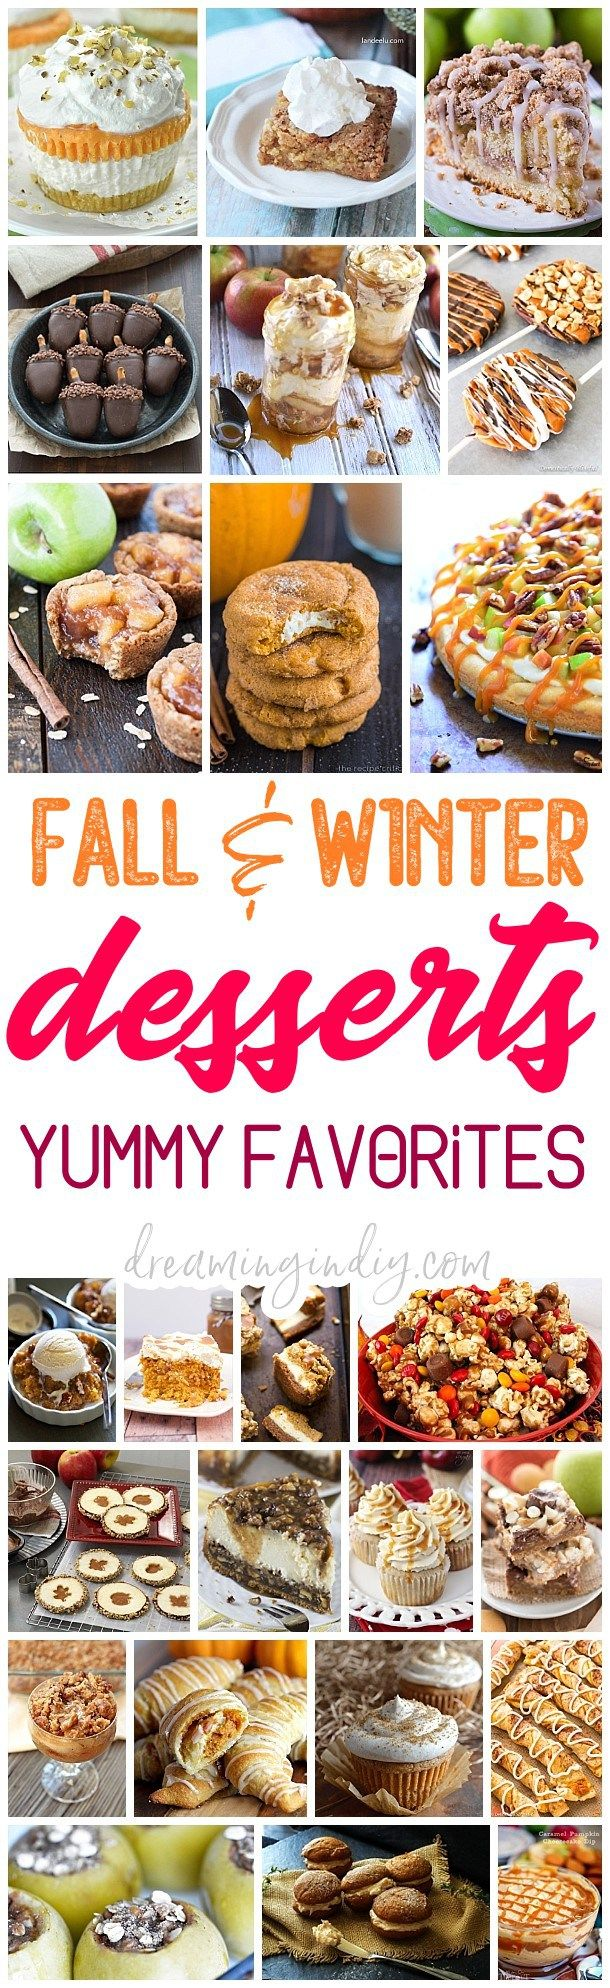 The BEST Easy Fall Harvest, Autumn Holidays and Winter Party Desserts & Treats Recipes Perfect for Your Thanksgiving Dessert Table and Christmas Holiday Party Trays! Pumpkin, Cinnamon, Apple and Caramel flavored favorites - Dreaming in DIY